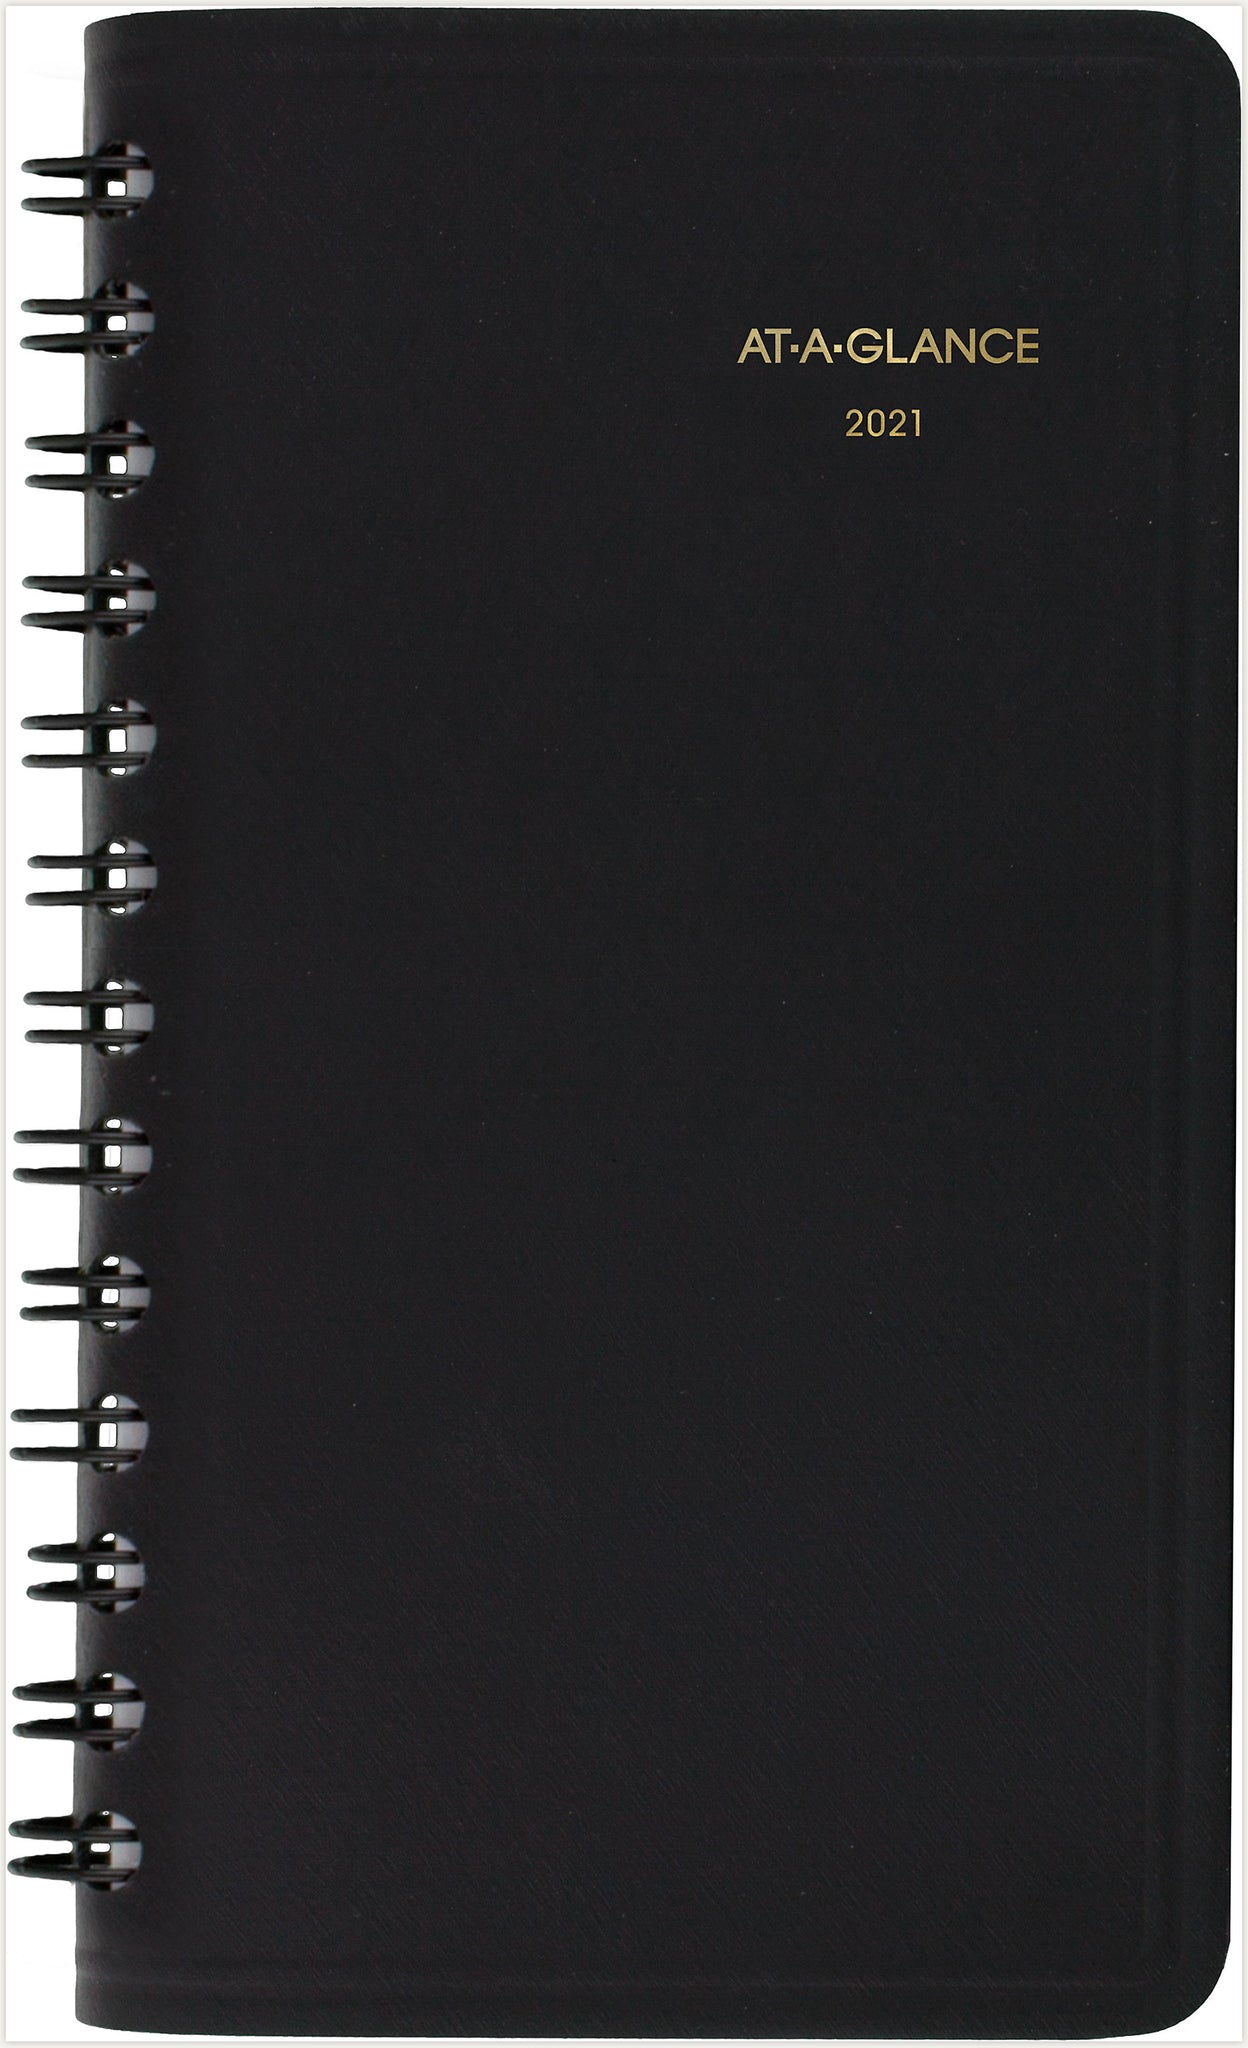 70-035 AT A GLANCE CALENDARS 2021